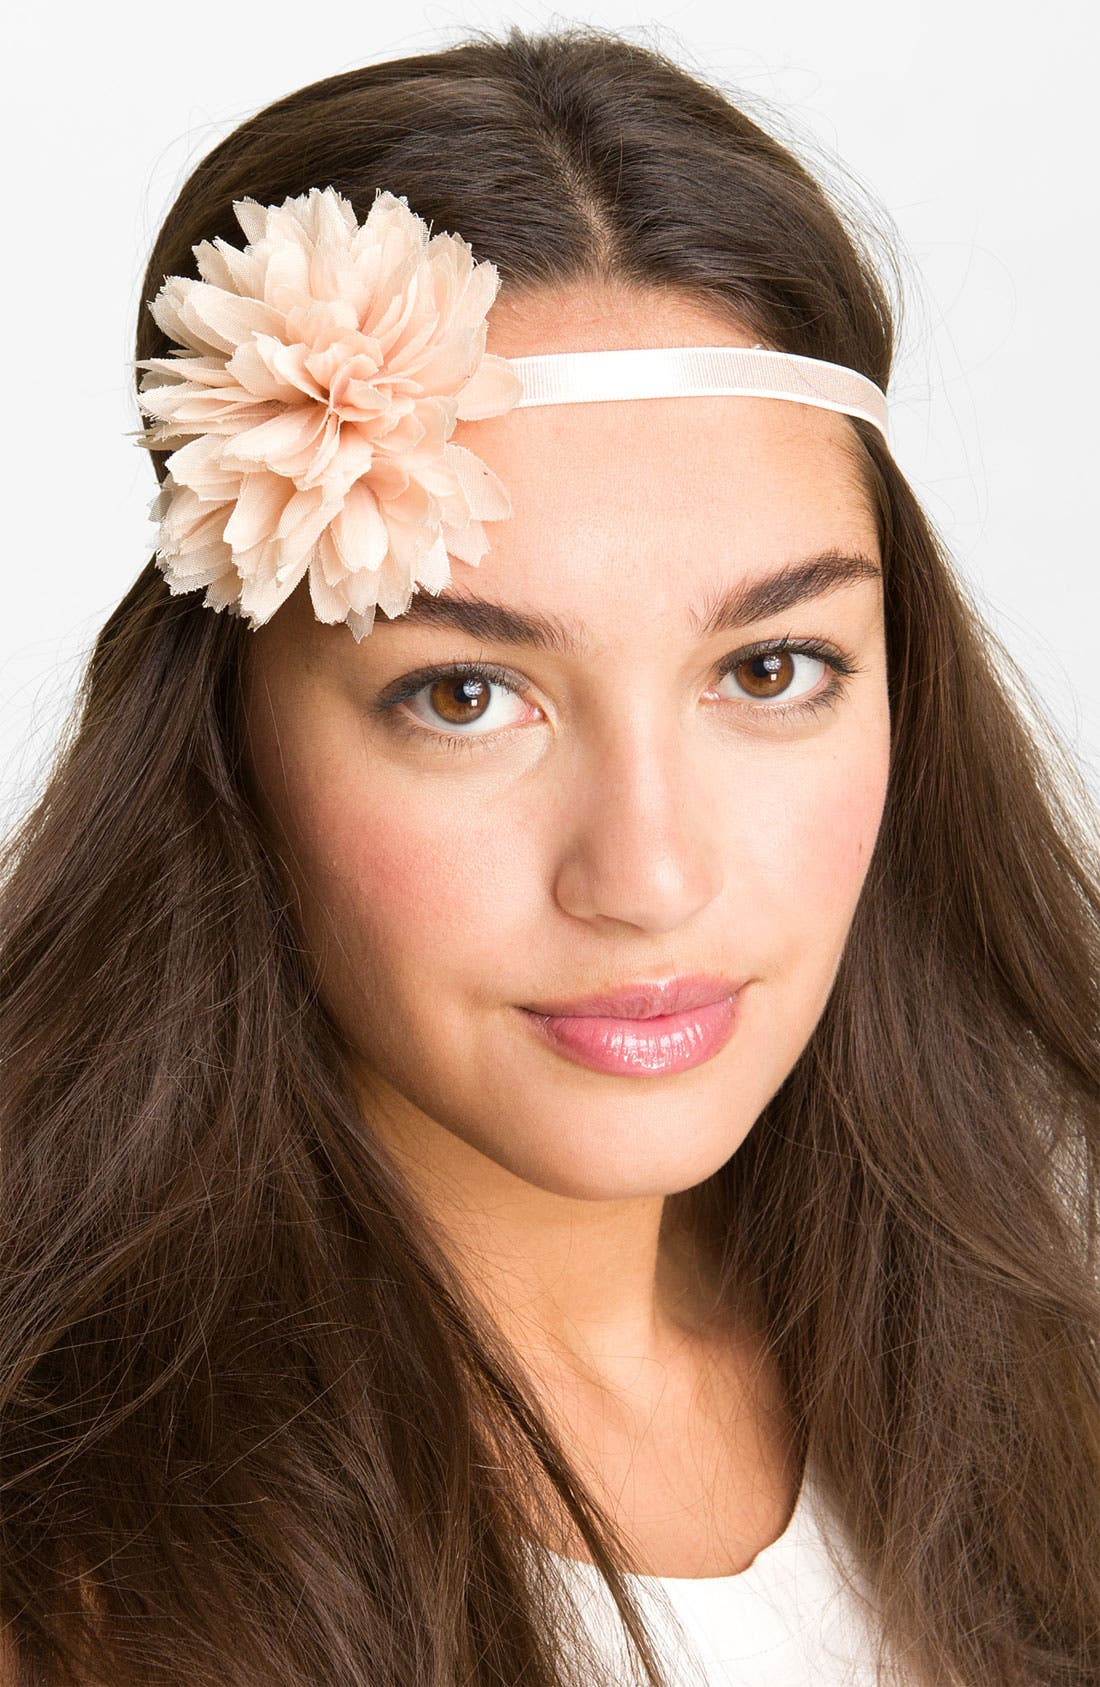 Alternate Image 1 Selected - Capelli of New York Chiffon Flower Headband